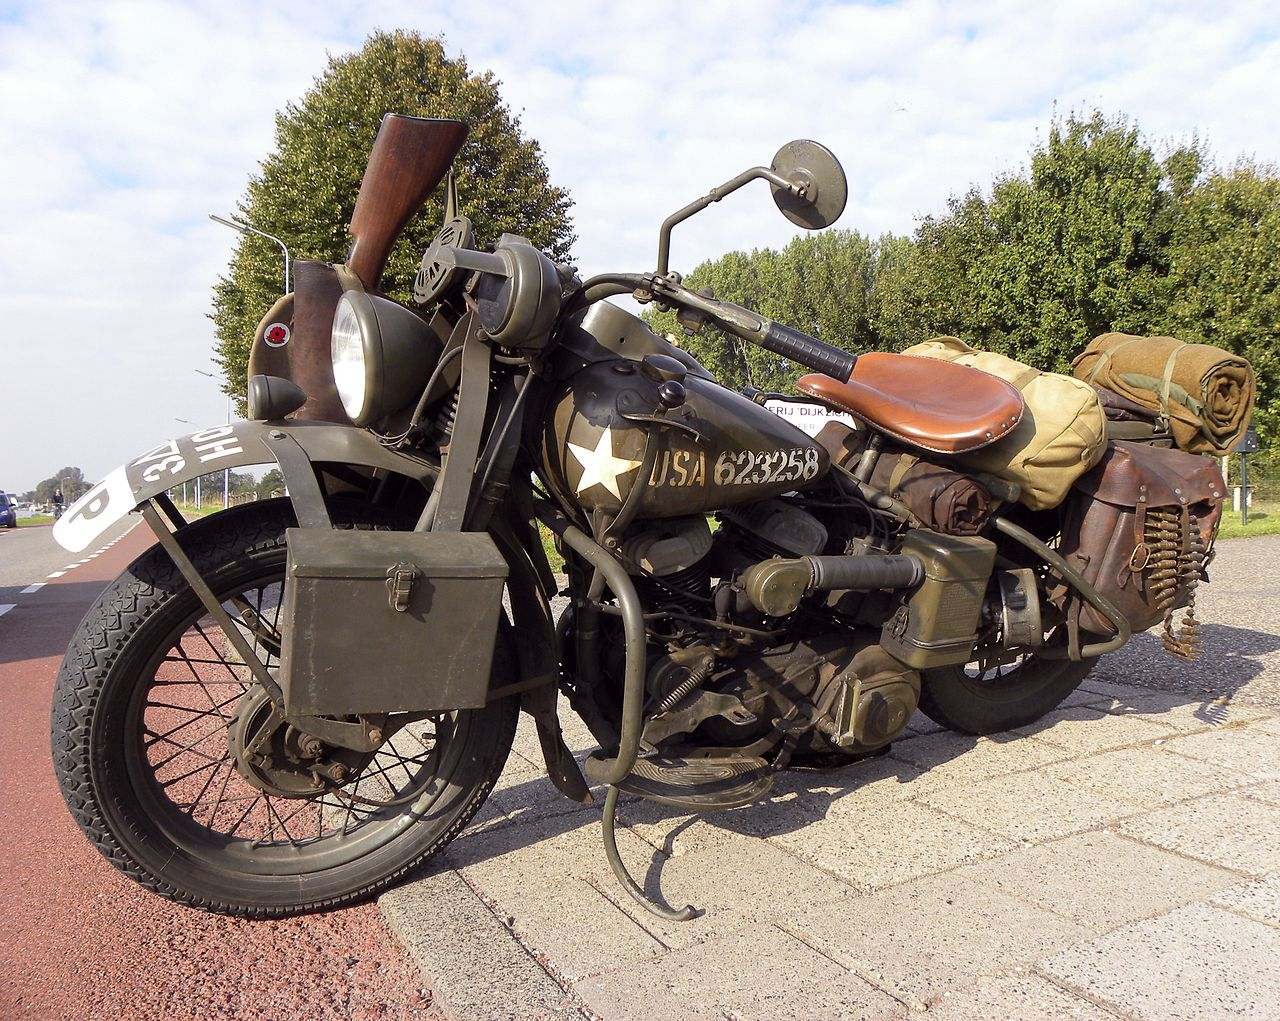 Harley Davidson Occasion Toulouse